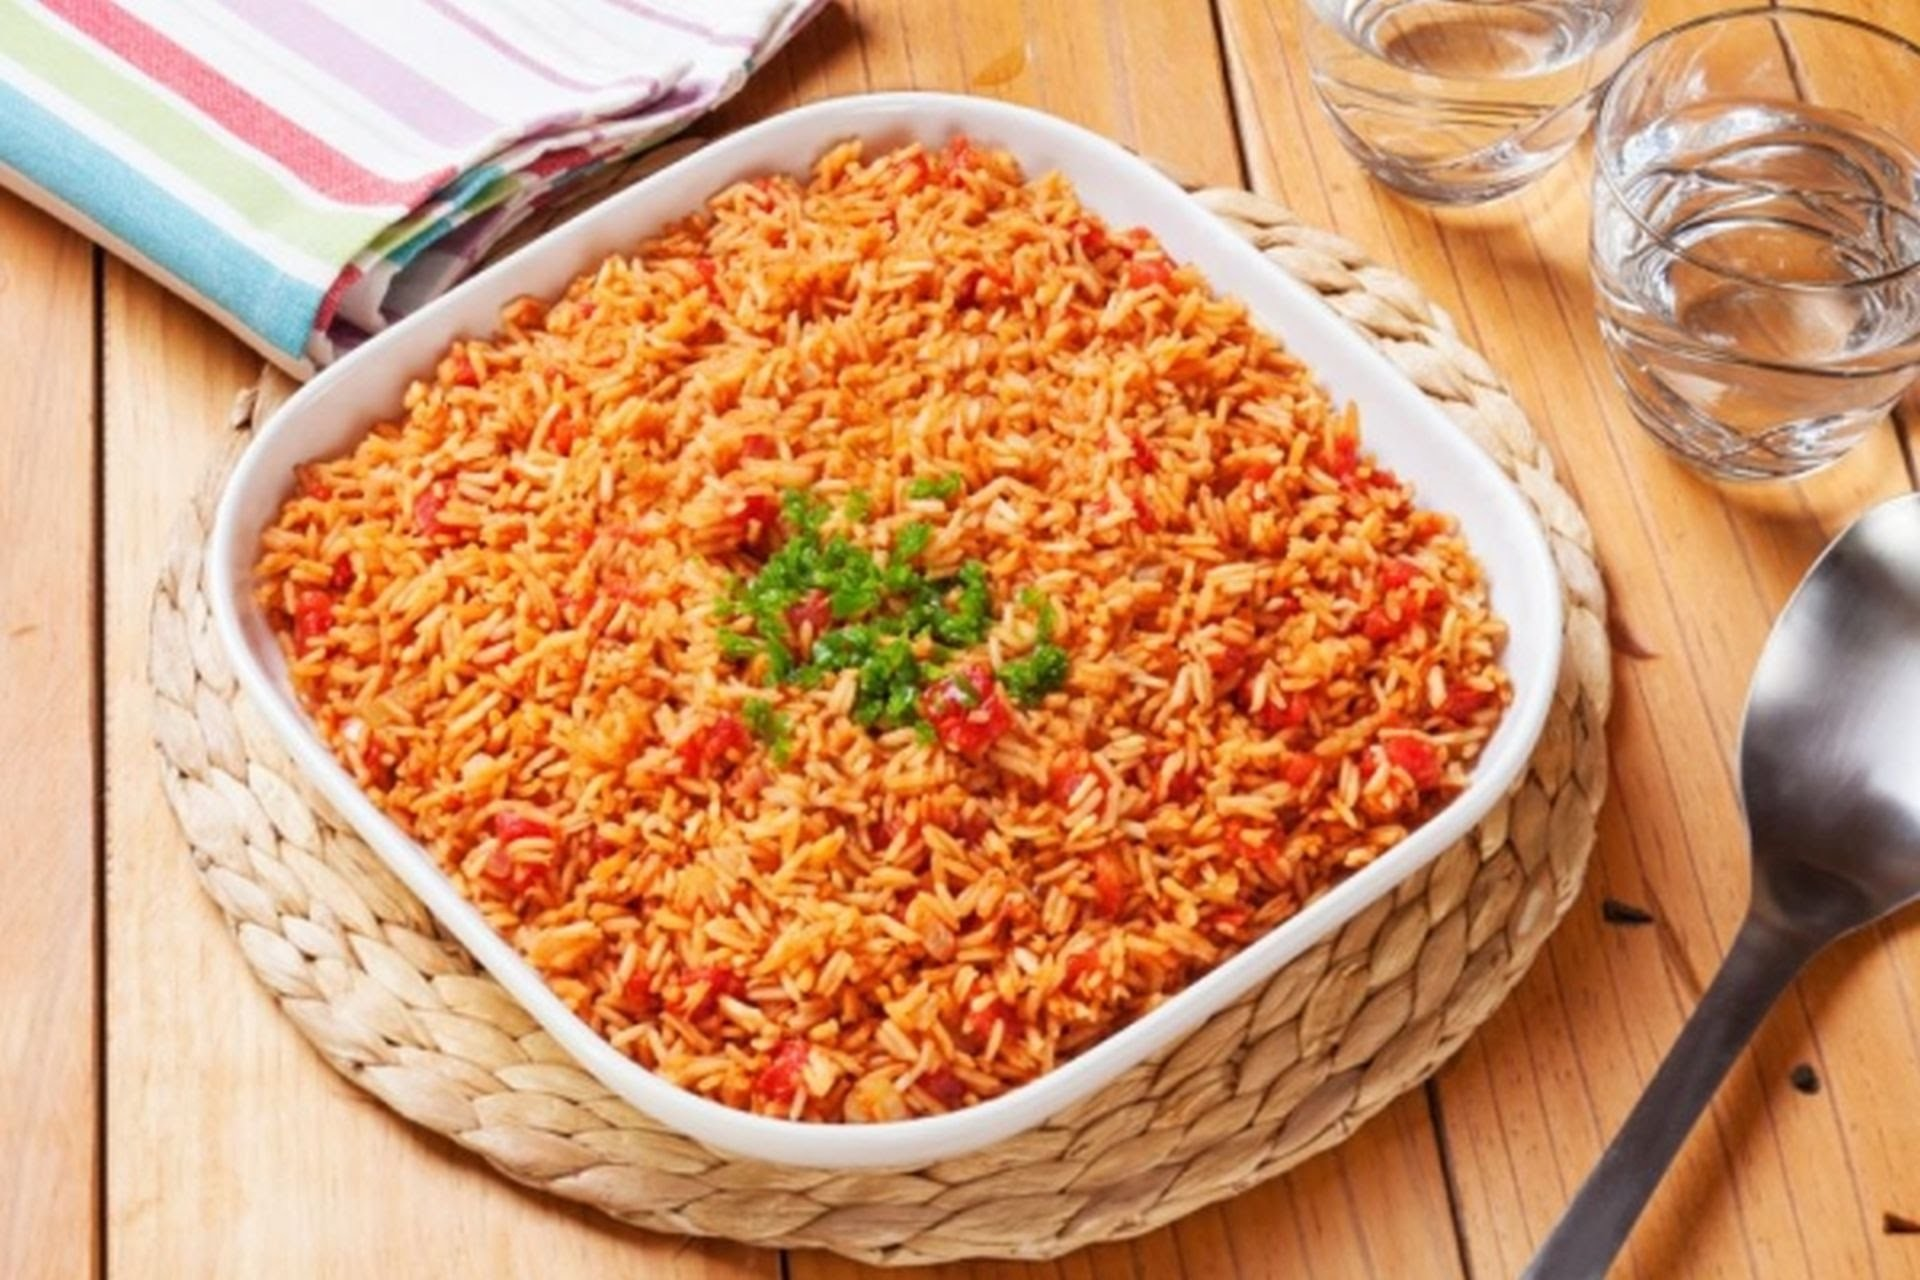 How to Make Mexican Rice - The Frugal Chef